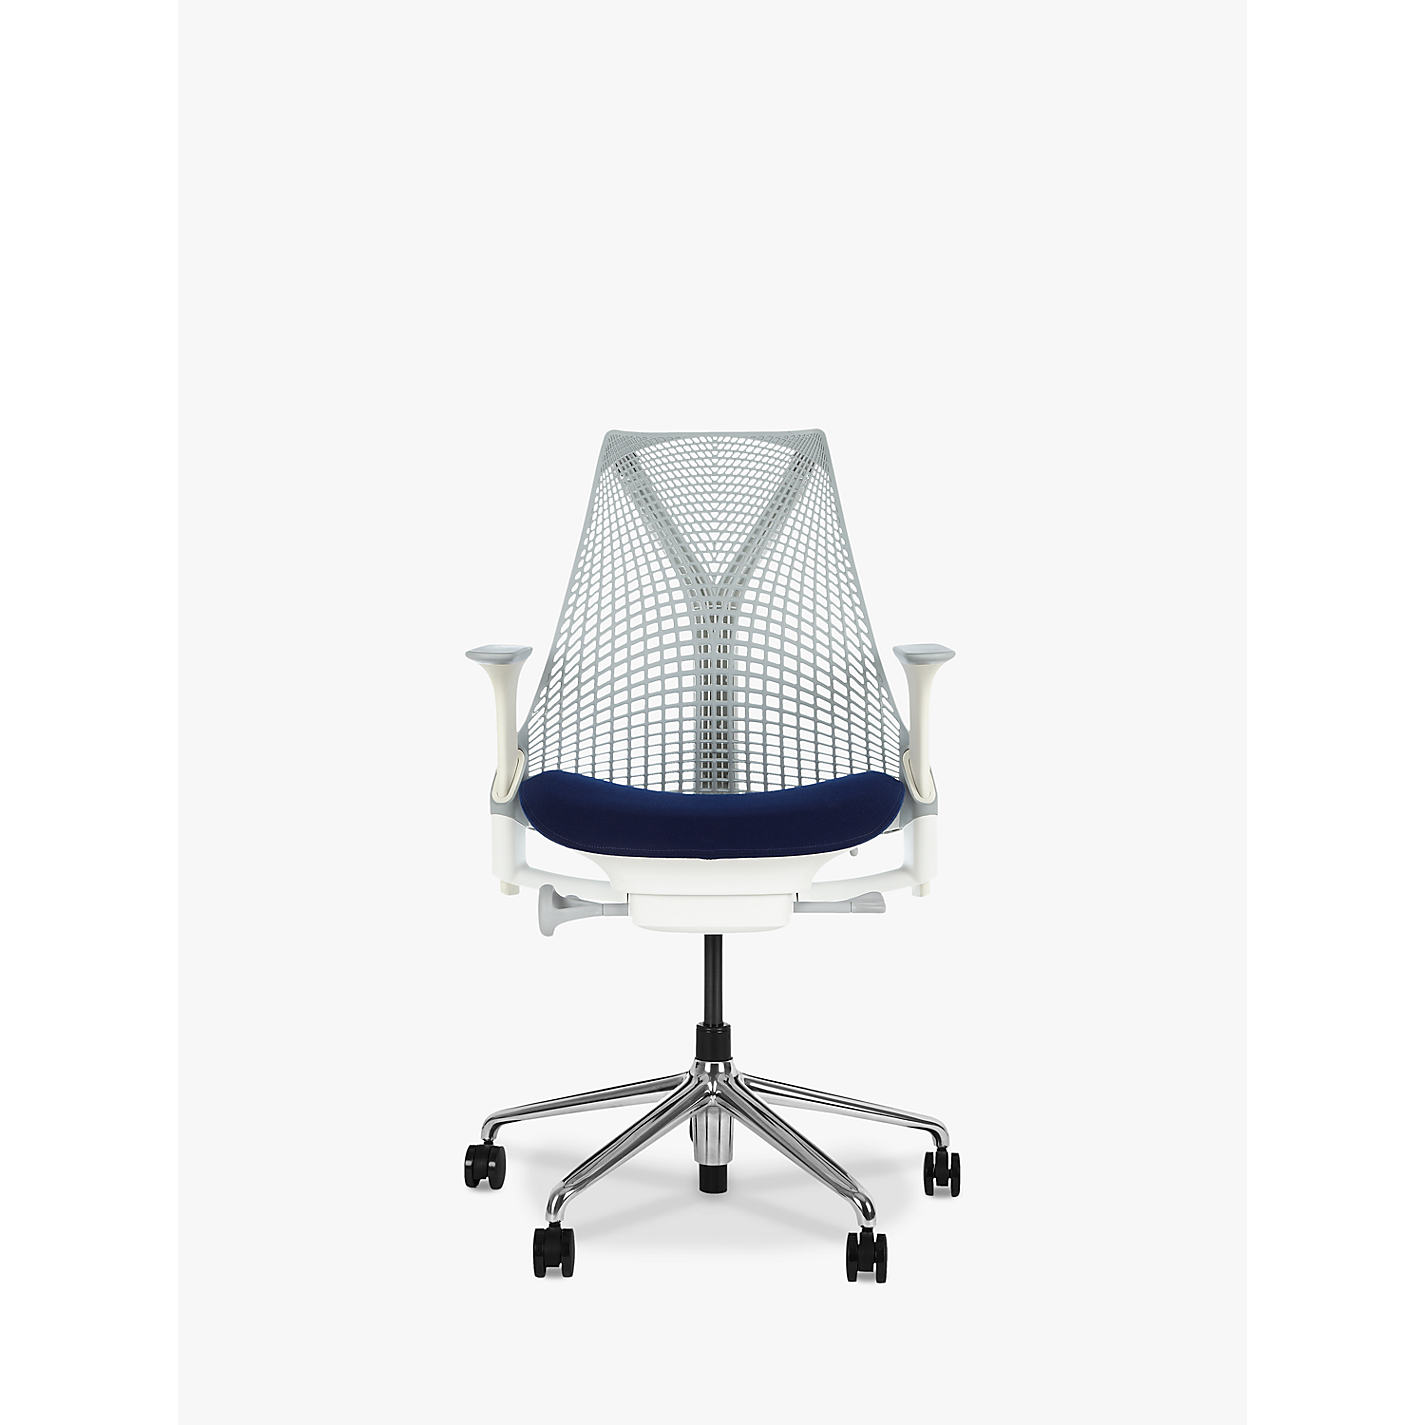 Buy Herman Miller SAYL fice Chairs